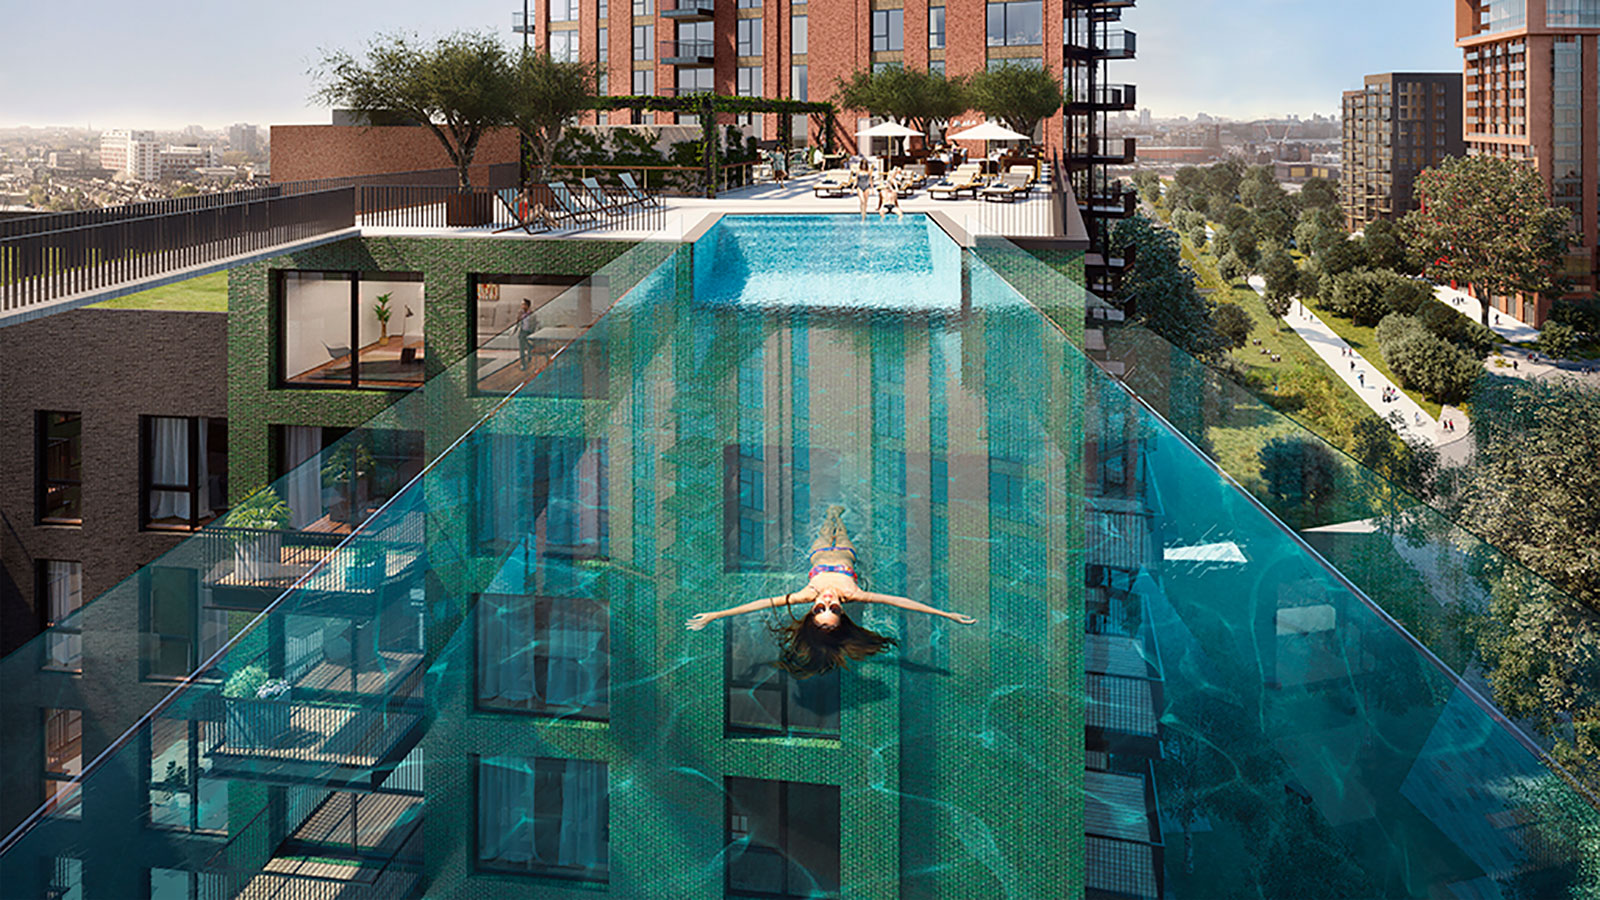 London's new see-through Sky Pool is first of its kind   CNN Travel